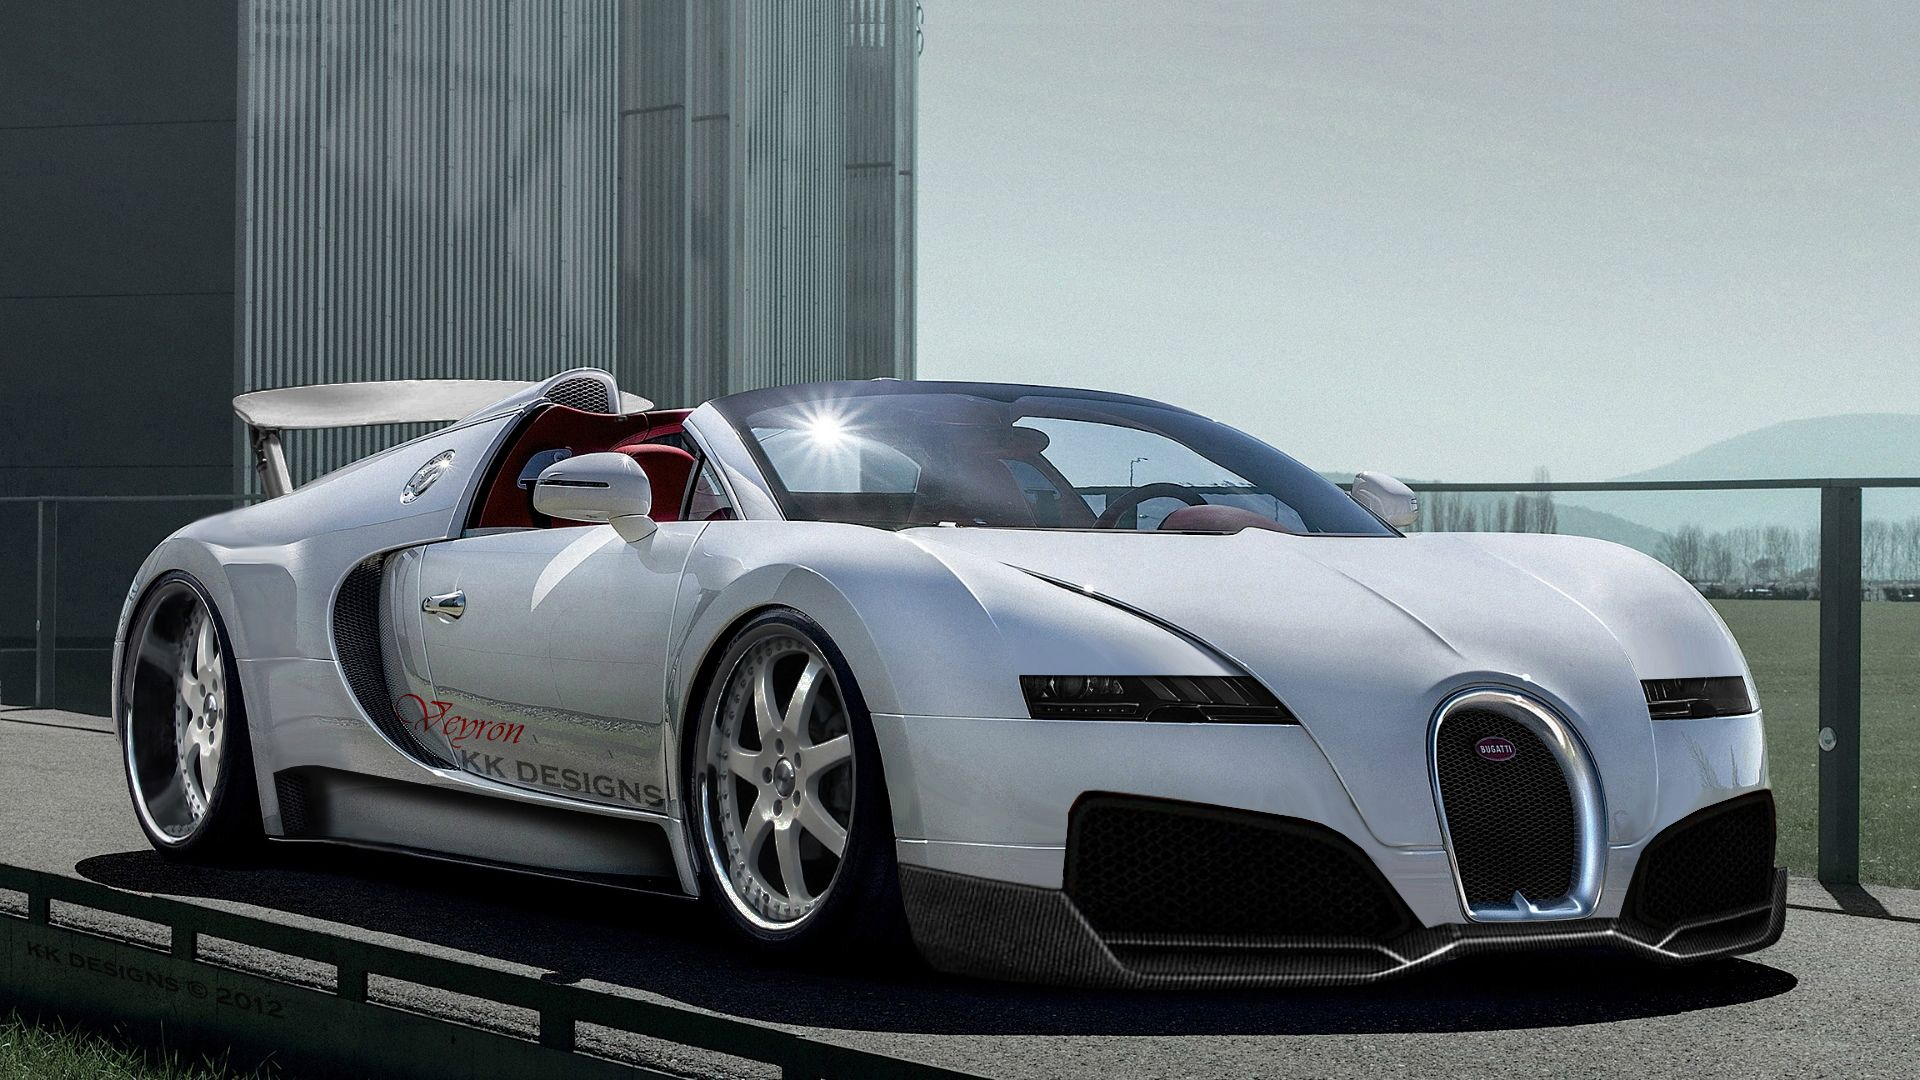 d4f7024c05aa290152de27b424f44c87 Exciting Bugatti Veyron Zero to Sixty Cars Trend